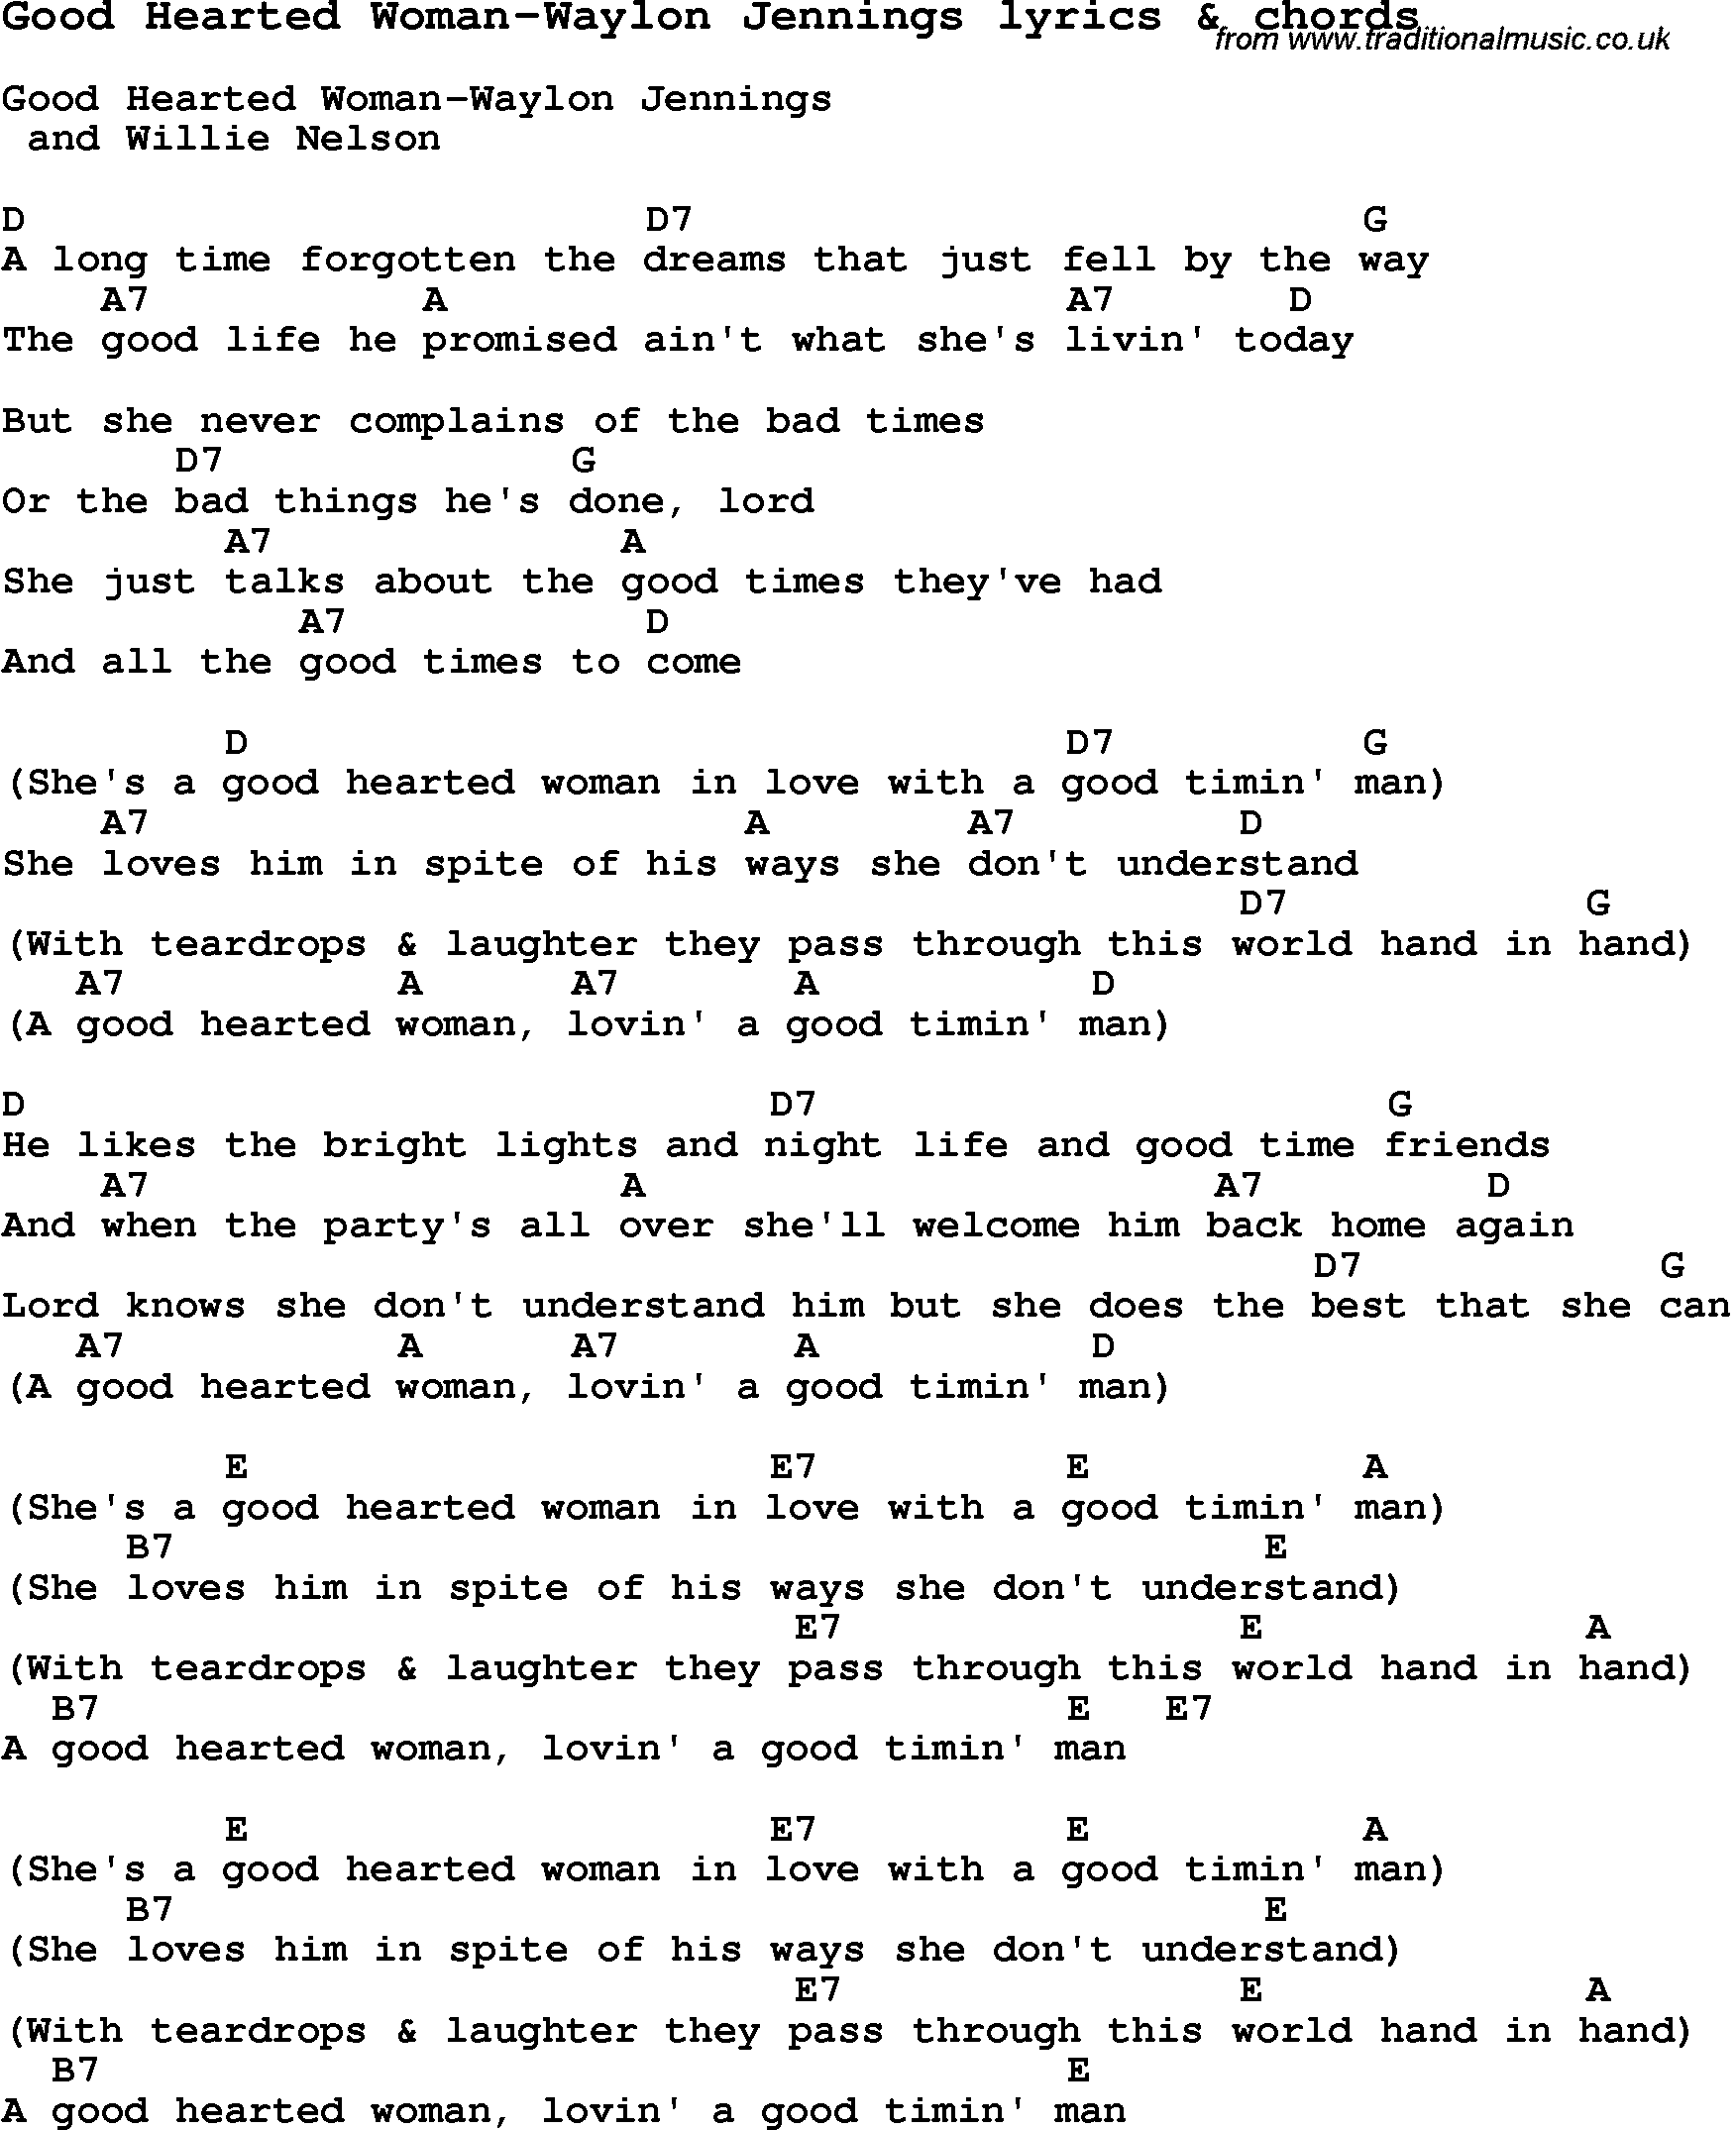 Love Song Lyrics For Good Hearted Woman Waylon Jennings With Chords Guitar Chords For Songs Lyrics And Chords Guitar Songs